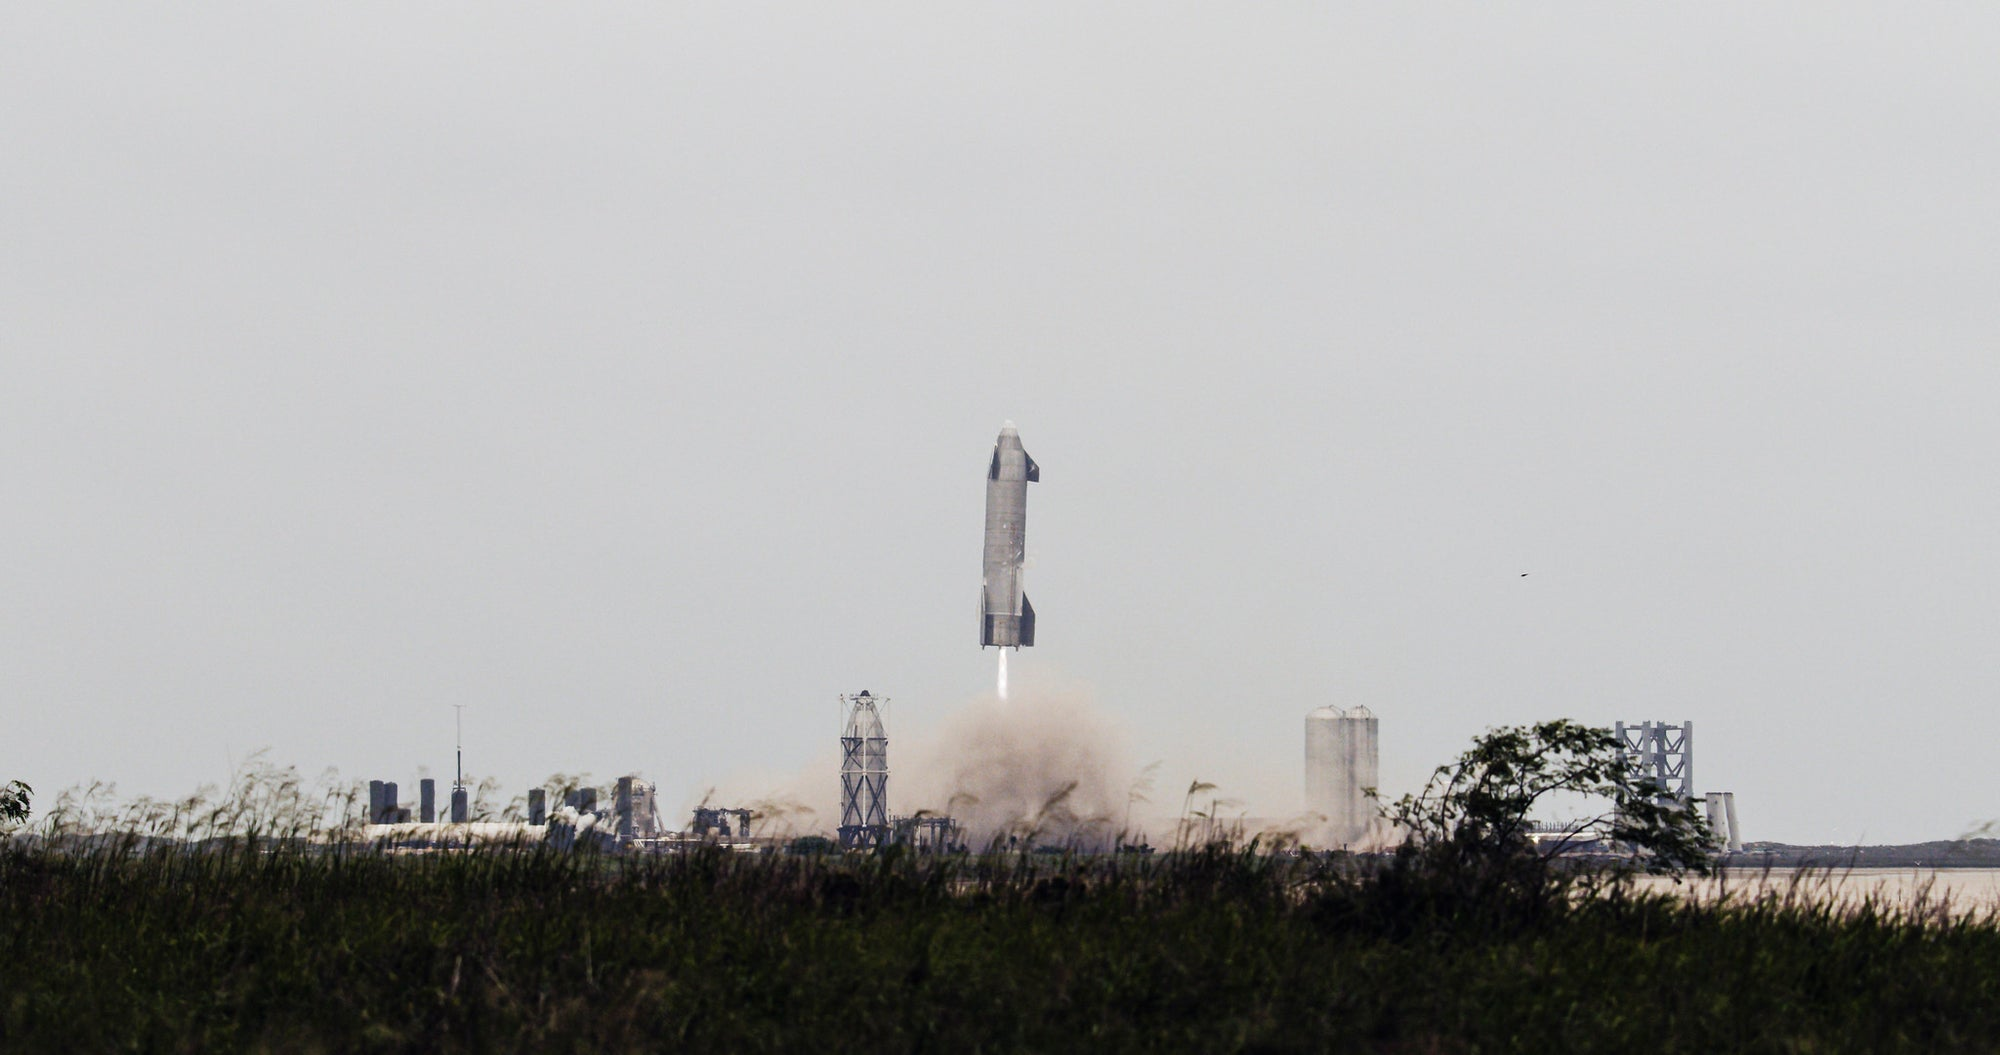 SpaceX Moves Starship SN15 To The Launch Pad To Prepare For Potential Reflight